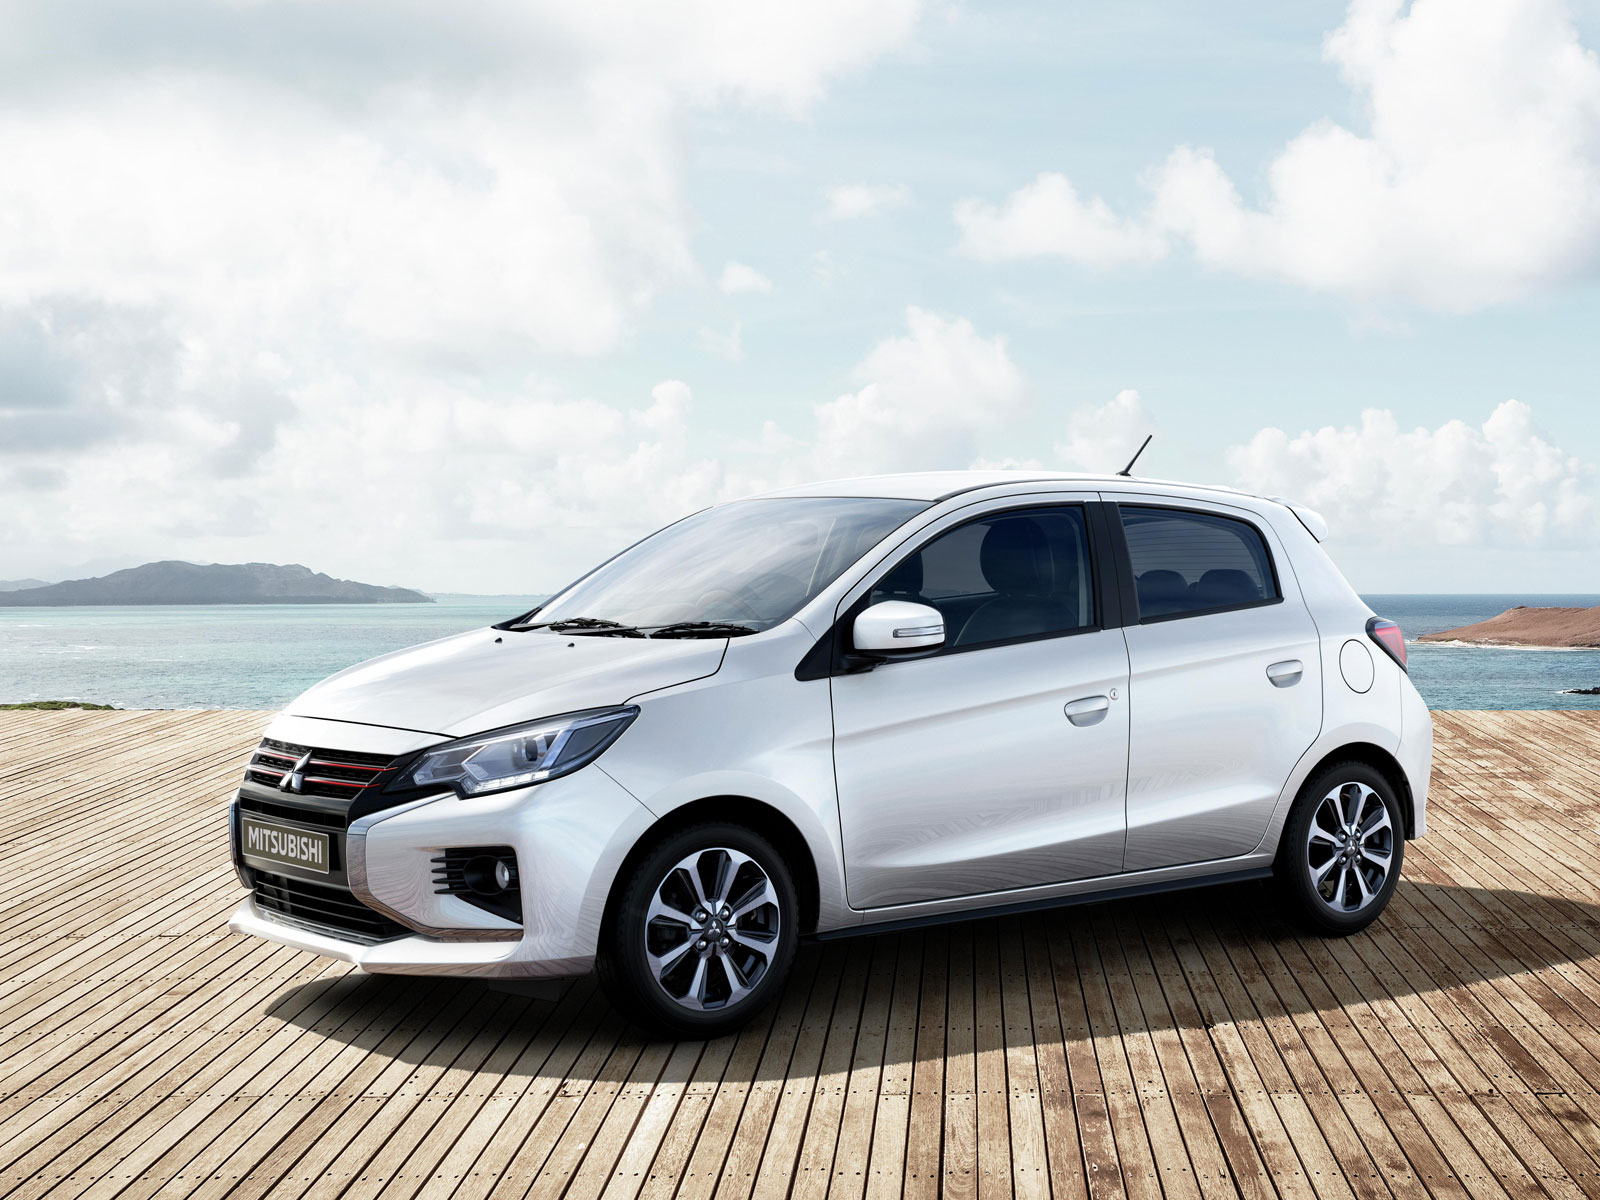 2021 mitsubishi mirage unveiled in montreal with slight